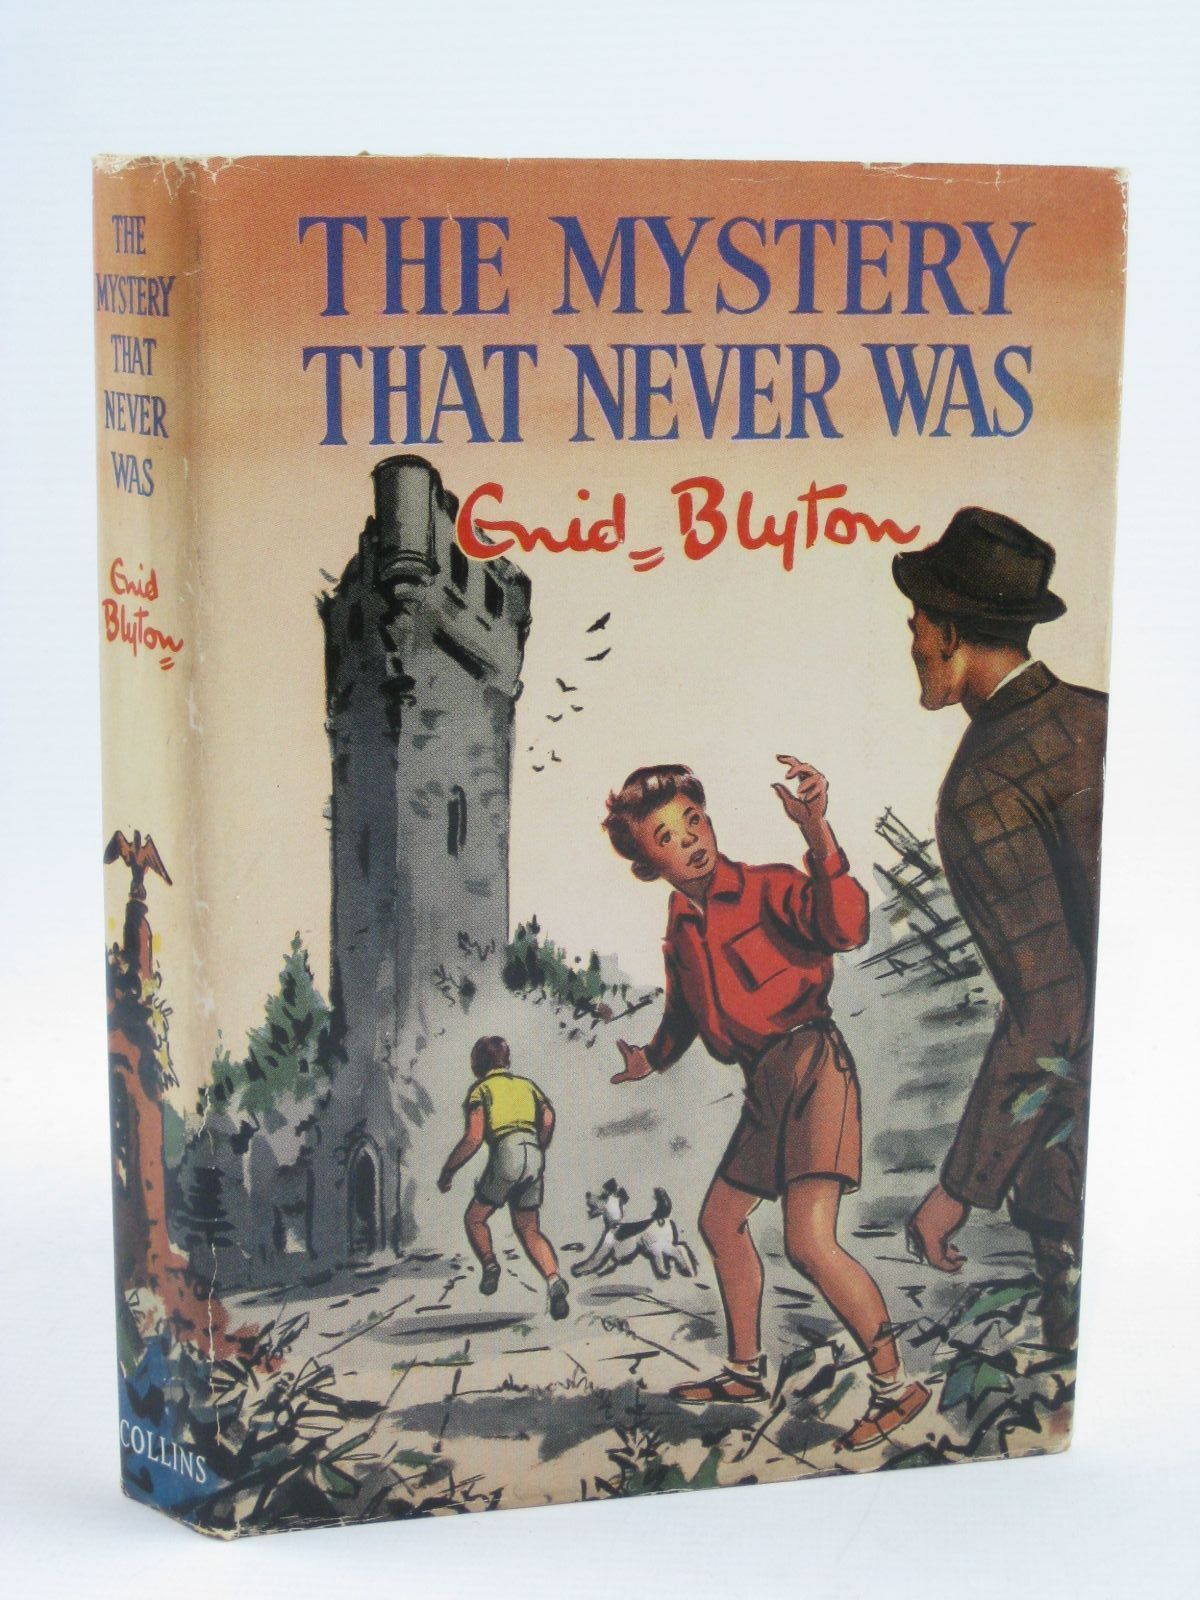 Cover of THE MYSTERY THAT NEVER WAS by Enid Blyton